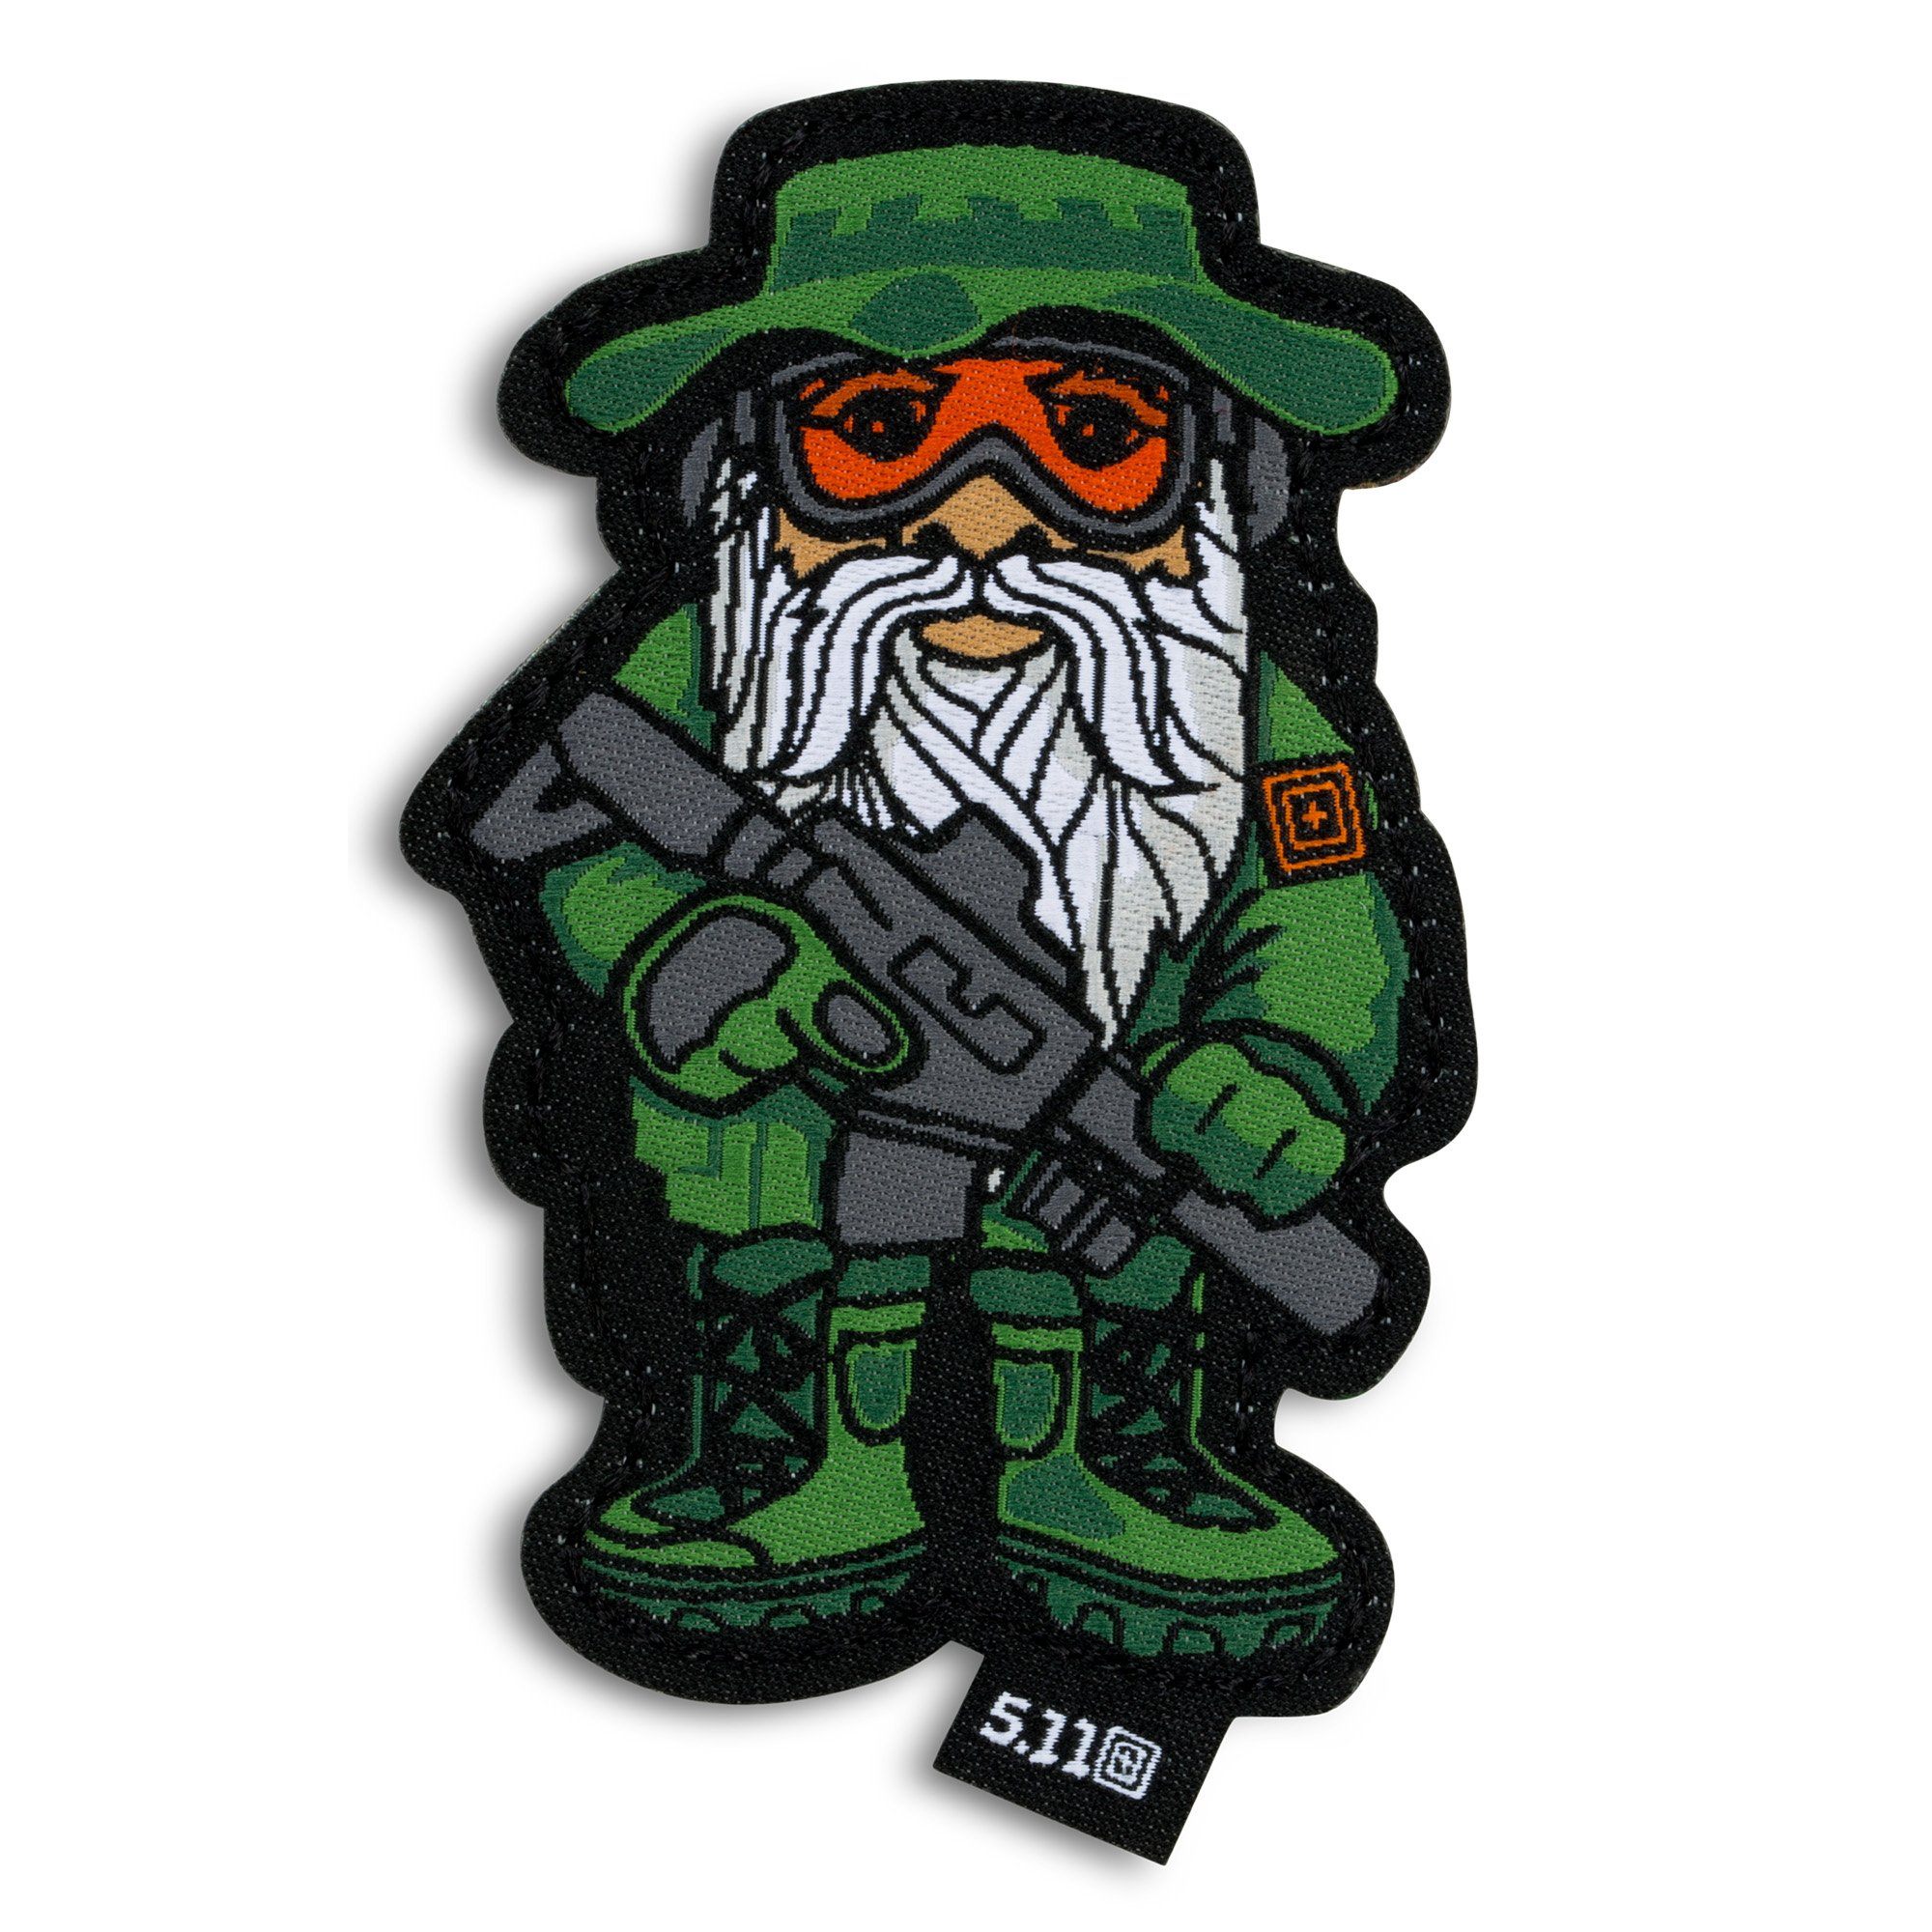 Marine Recon Gnome Patch